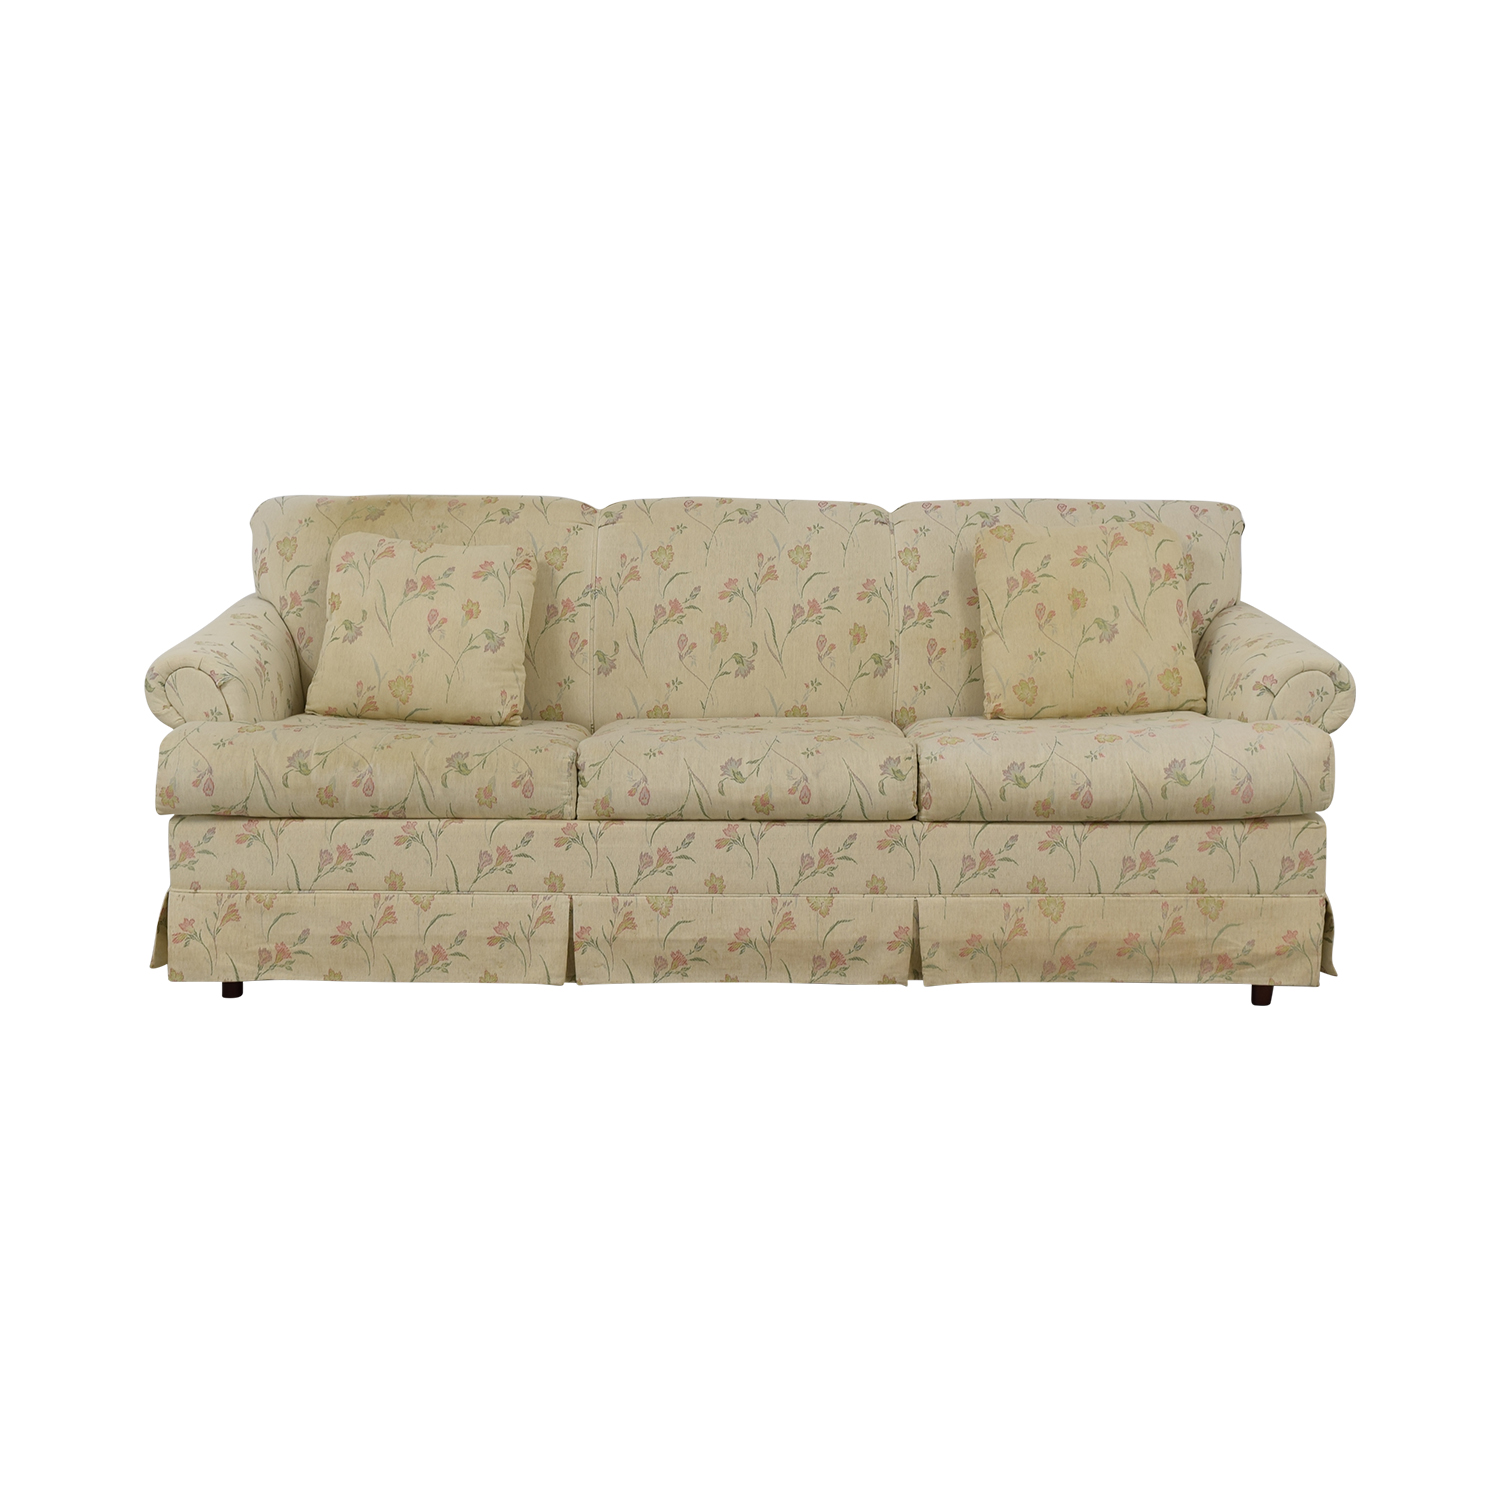 buy Stearns & Foster Stearns & Foster Queen Convertible Fashion Sofa online